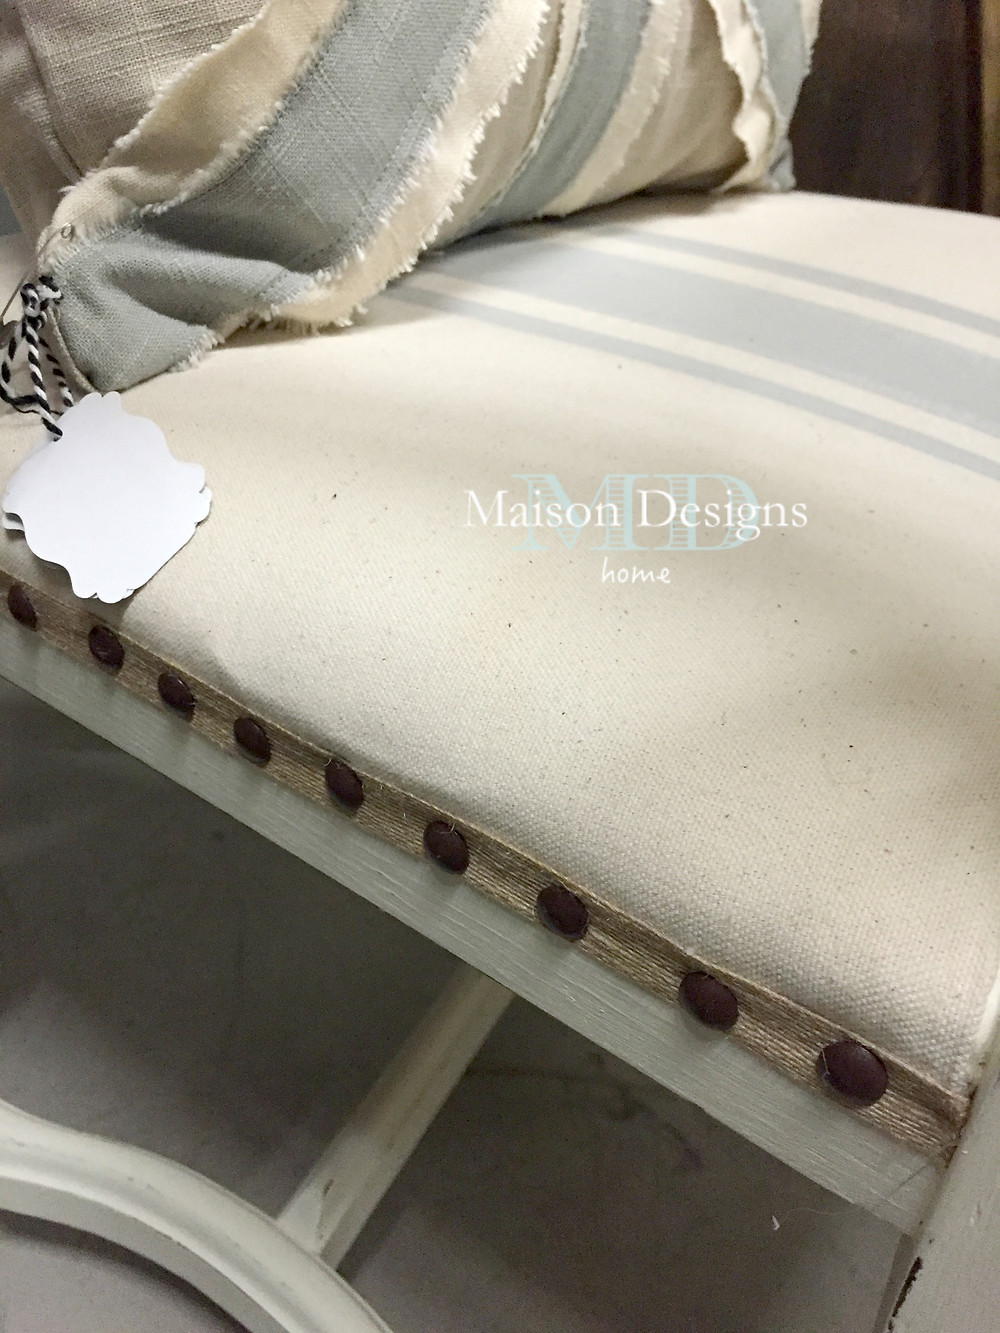 French Country Style Chair~Maison Designs Home